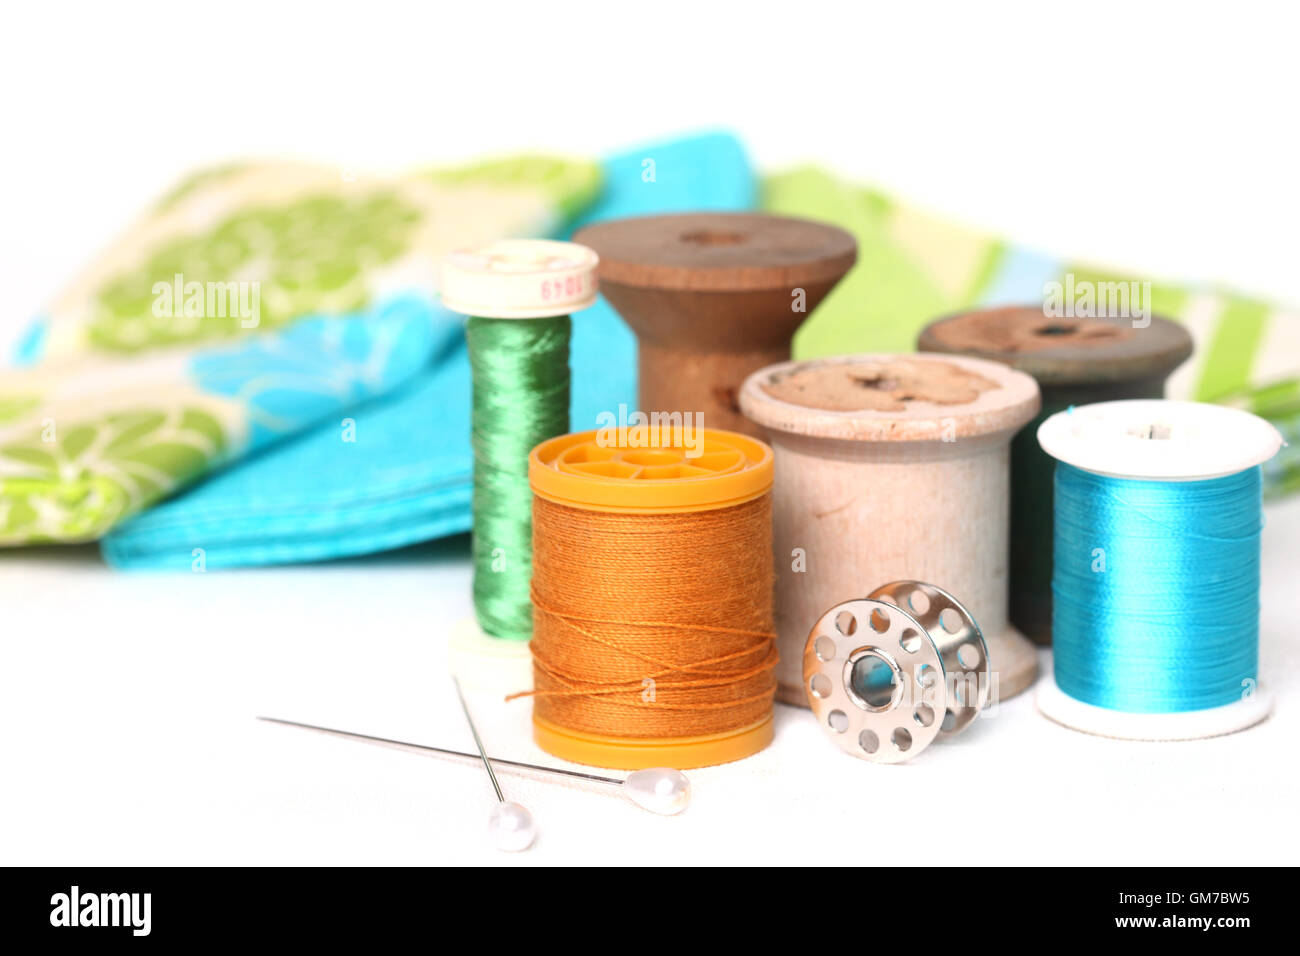 Sewing and Quilting Thread On White - Stock Image